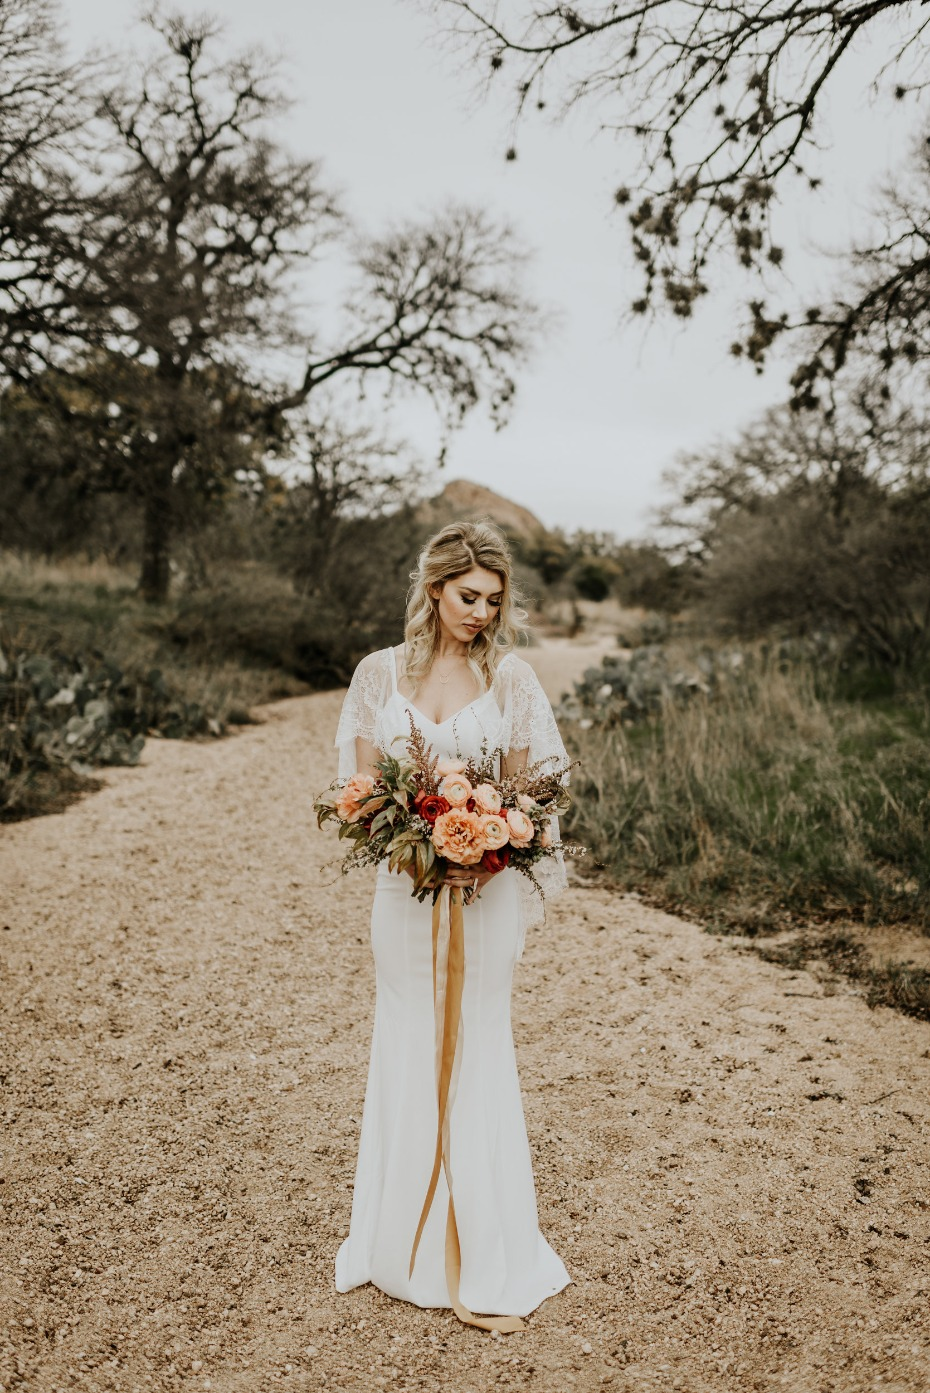 Gorgeous boho bridal look